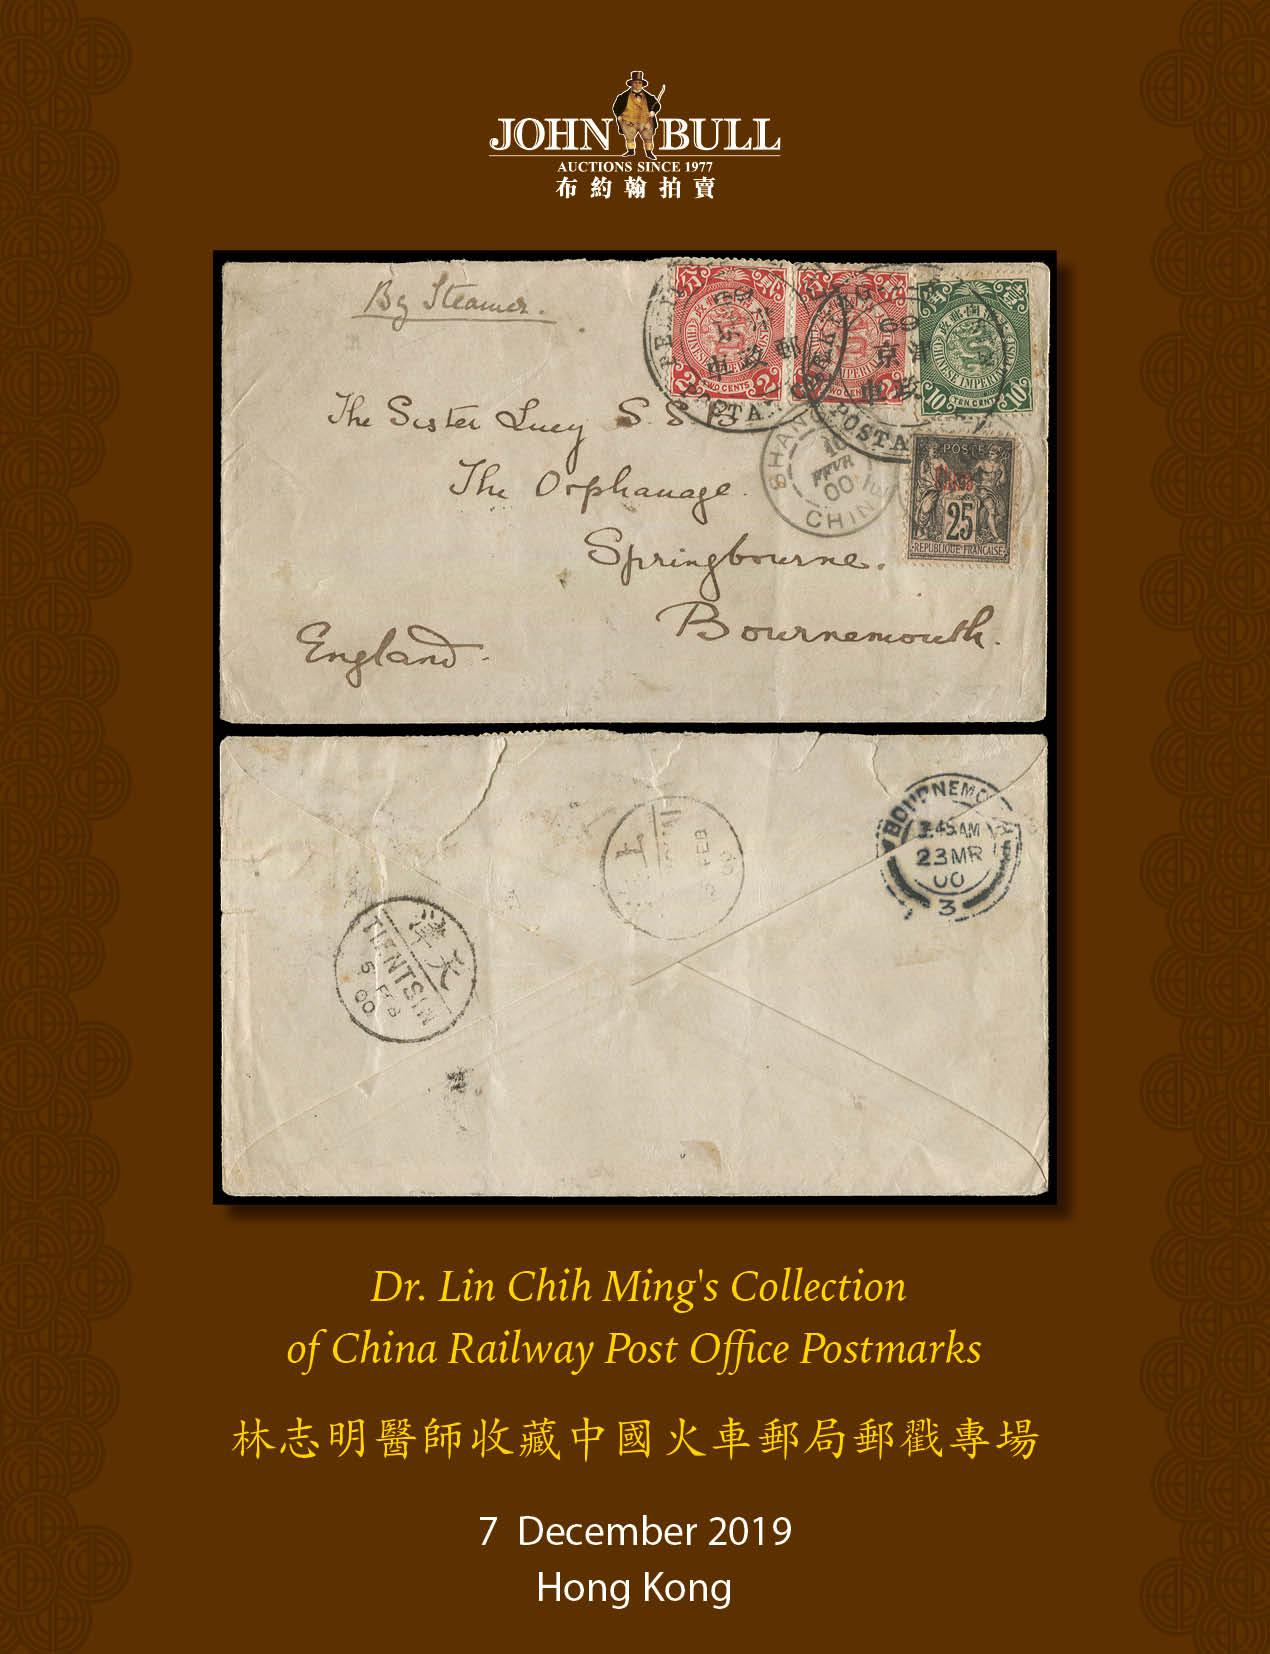 Dr. Lin Chih Ming's Collection of China Railway Post Office Postmarks